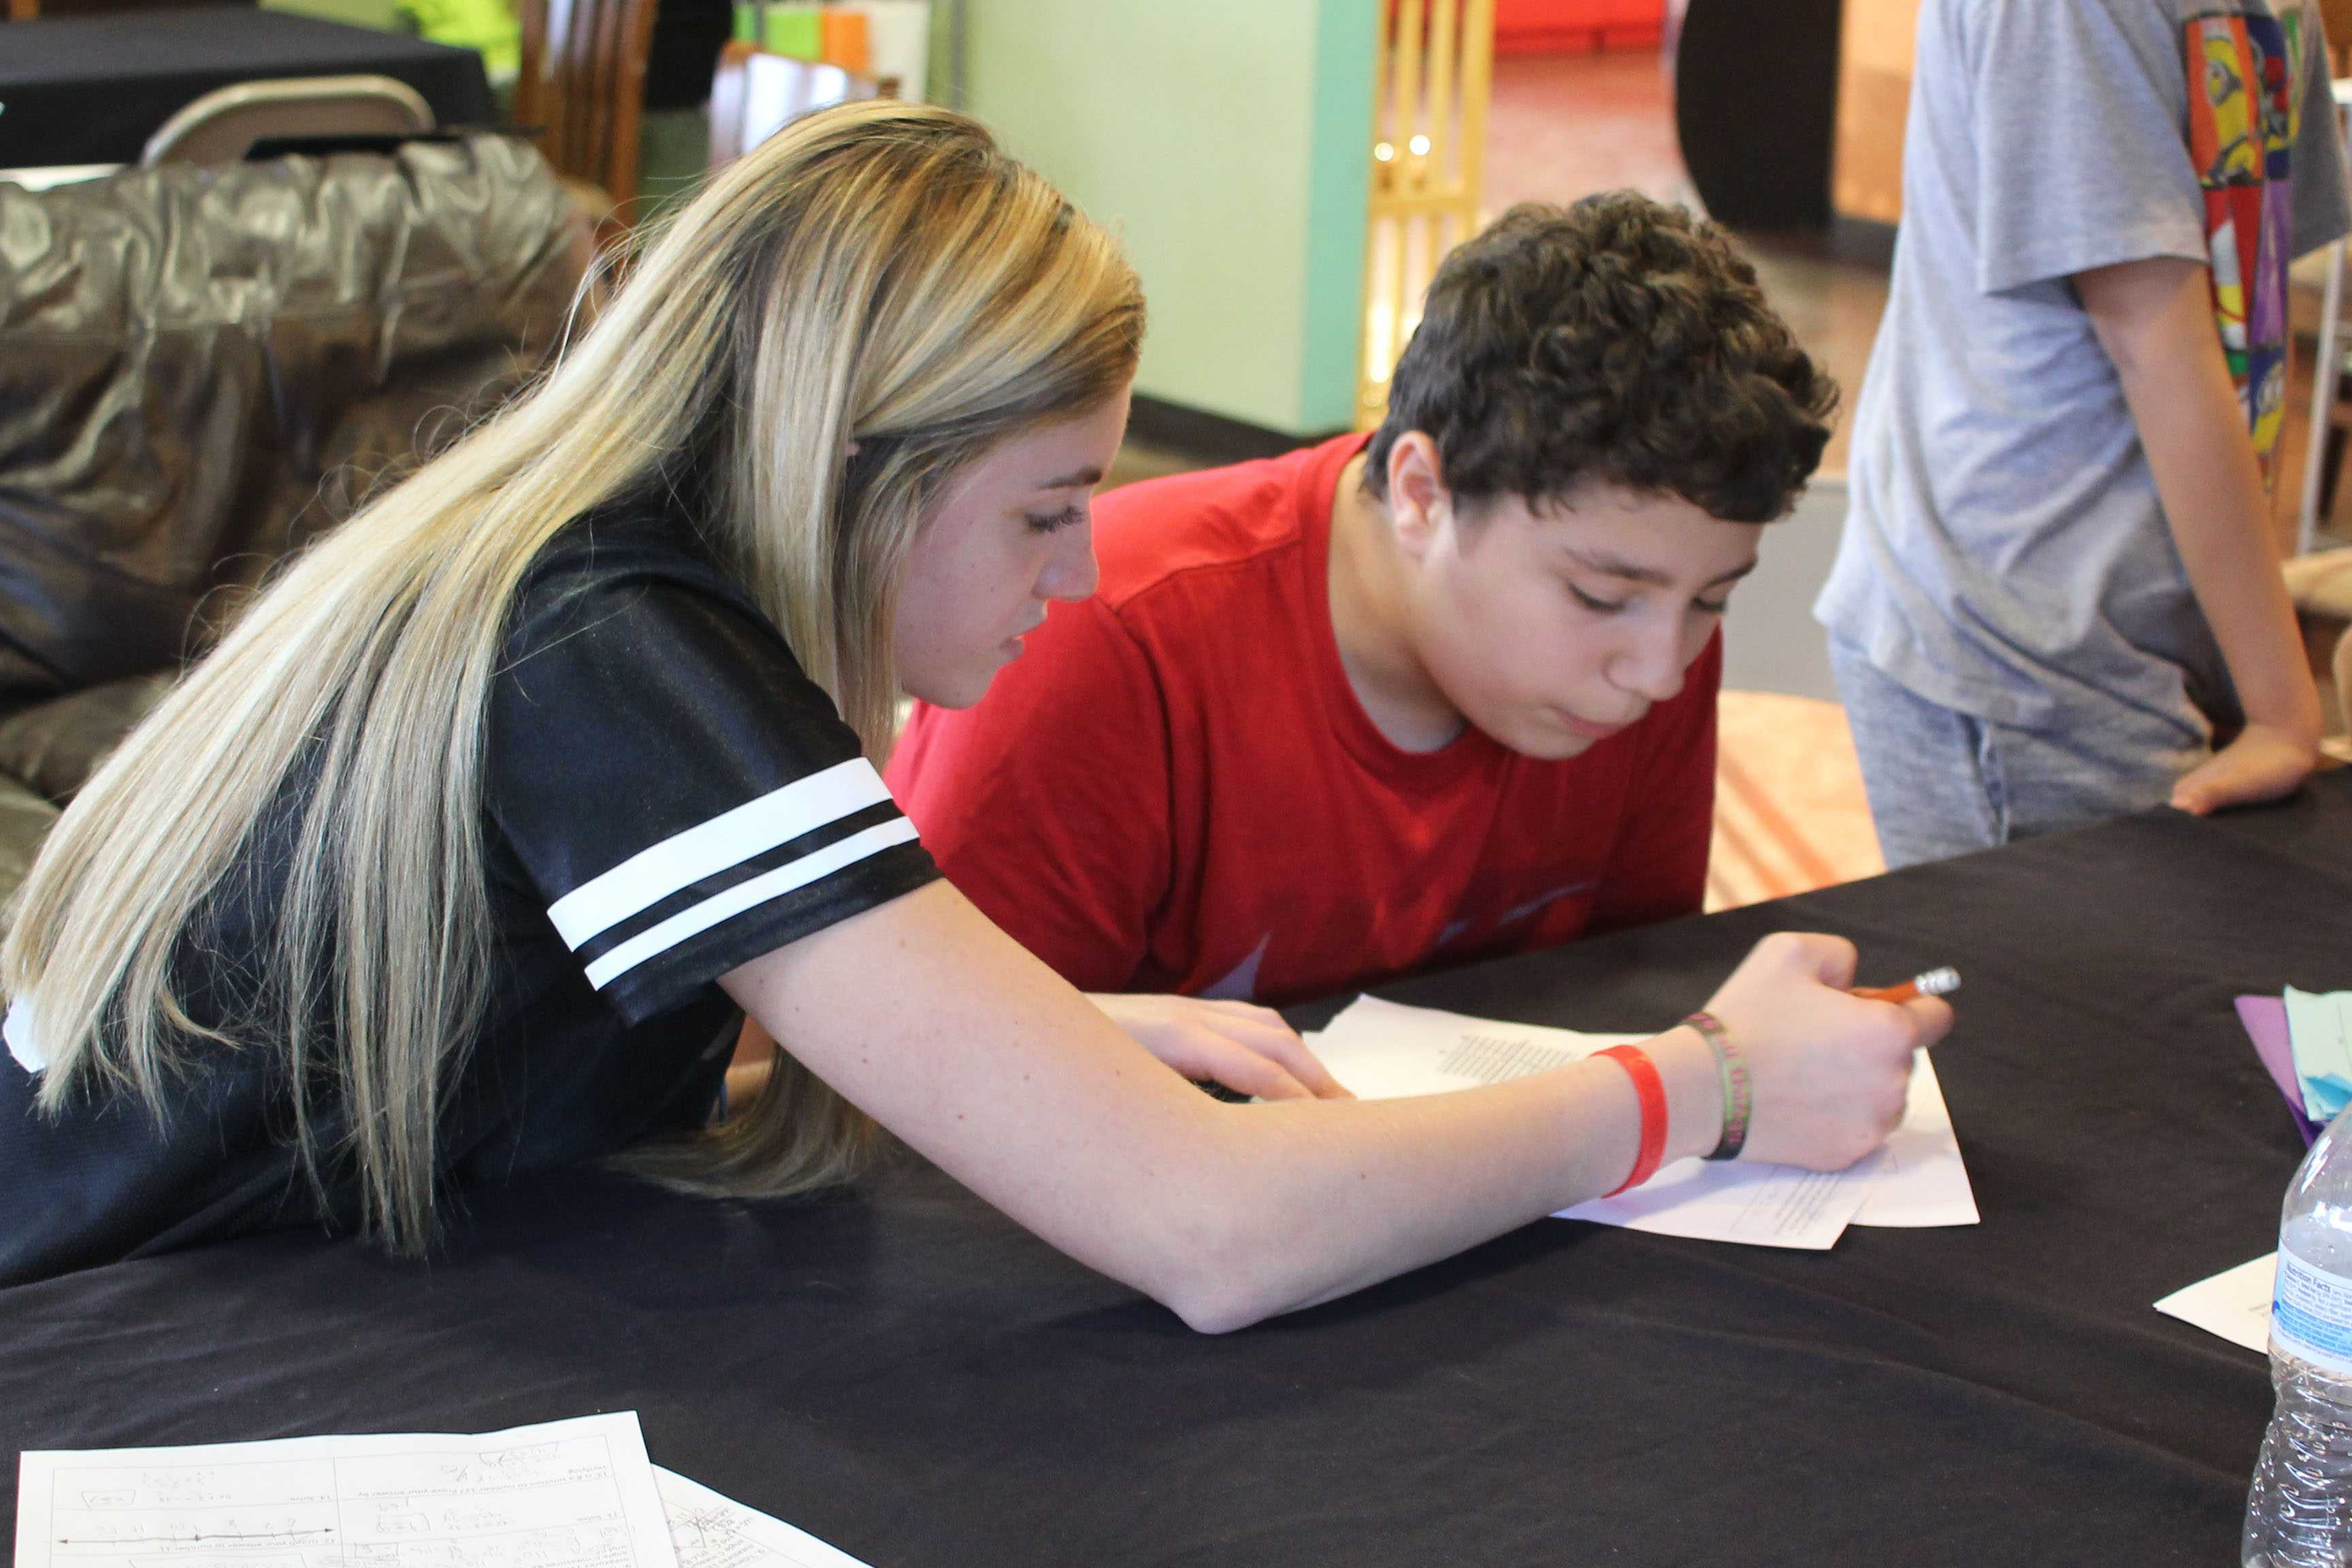 Senior Darby Wright helps a student with a math assignment.